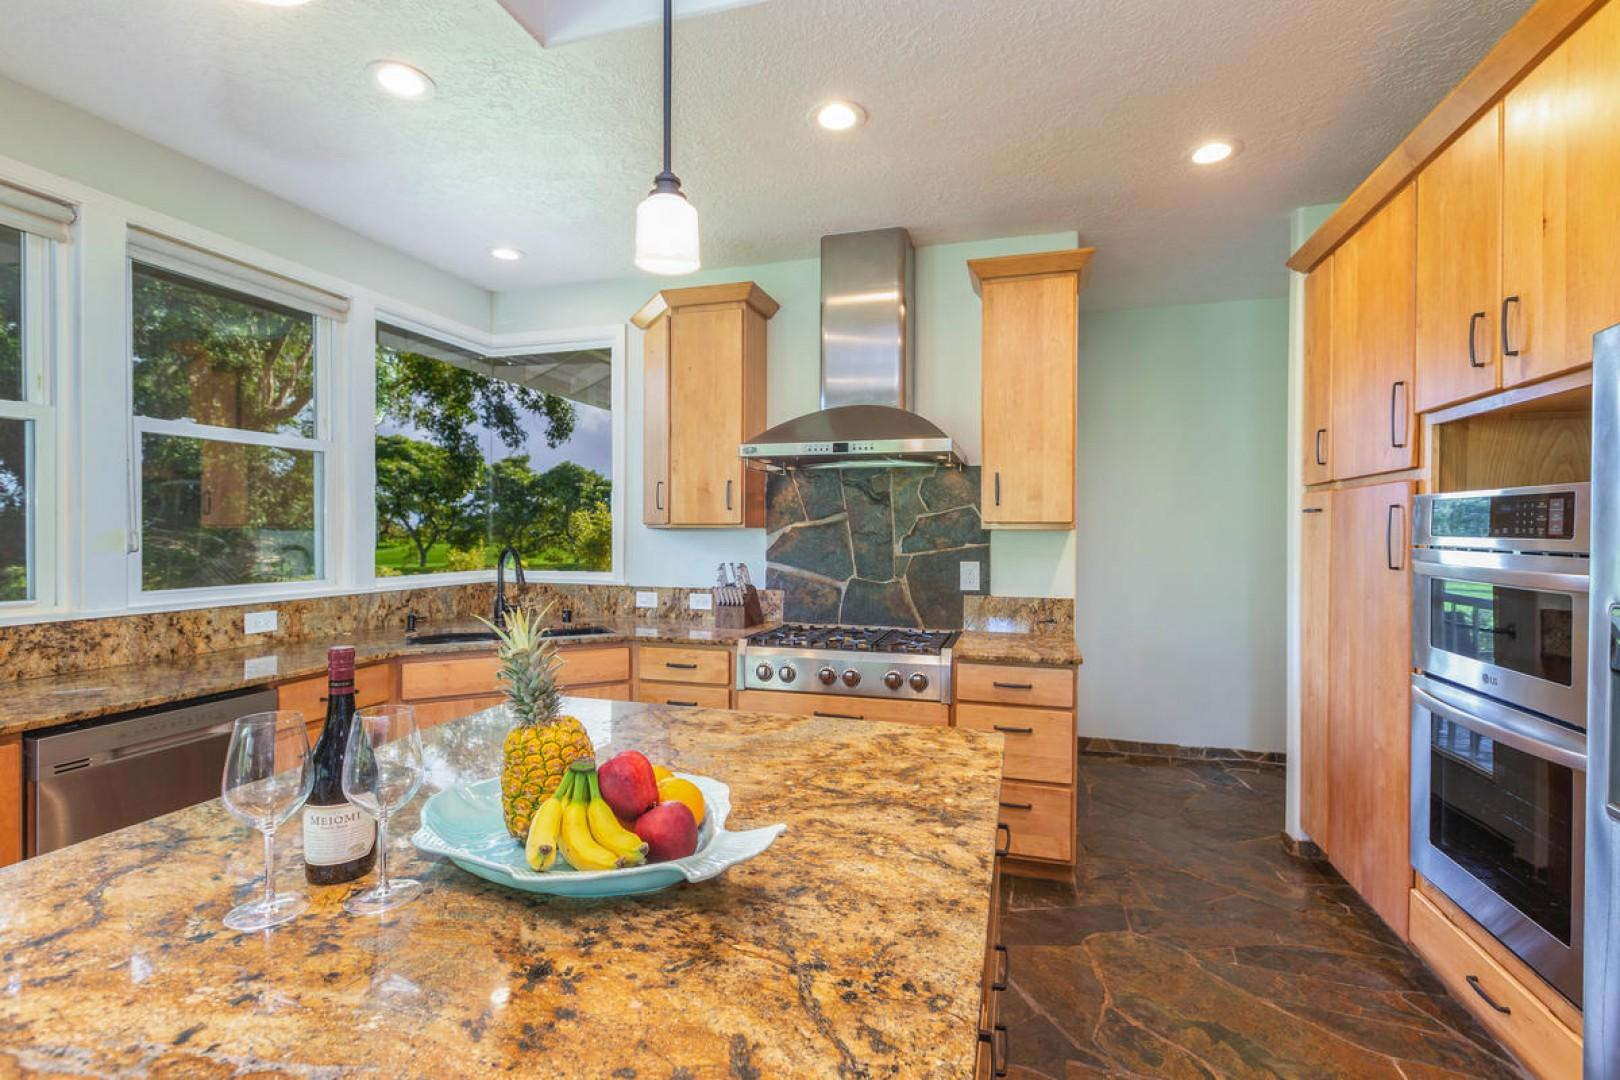 The kitchen has stainless steel appliances and quality finishes